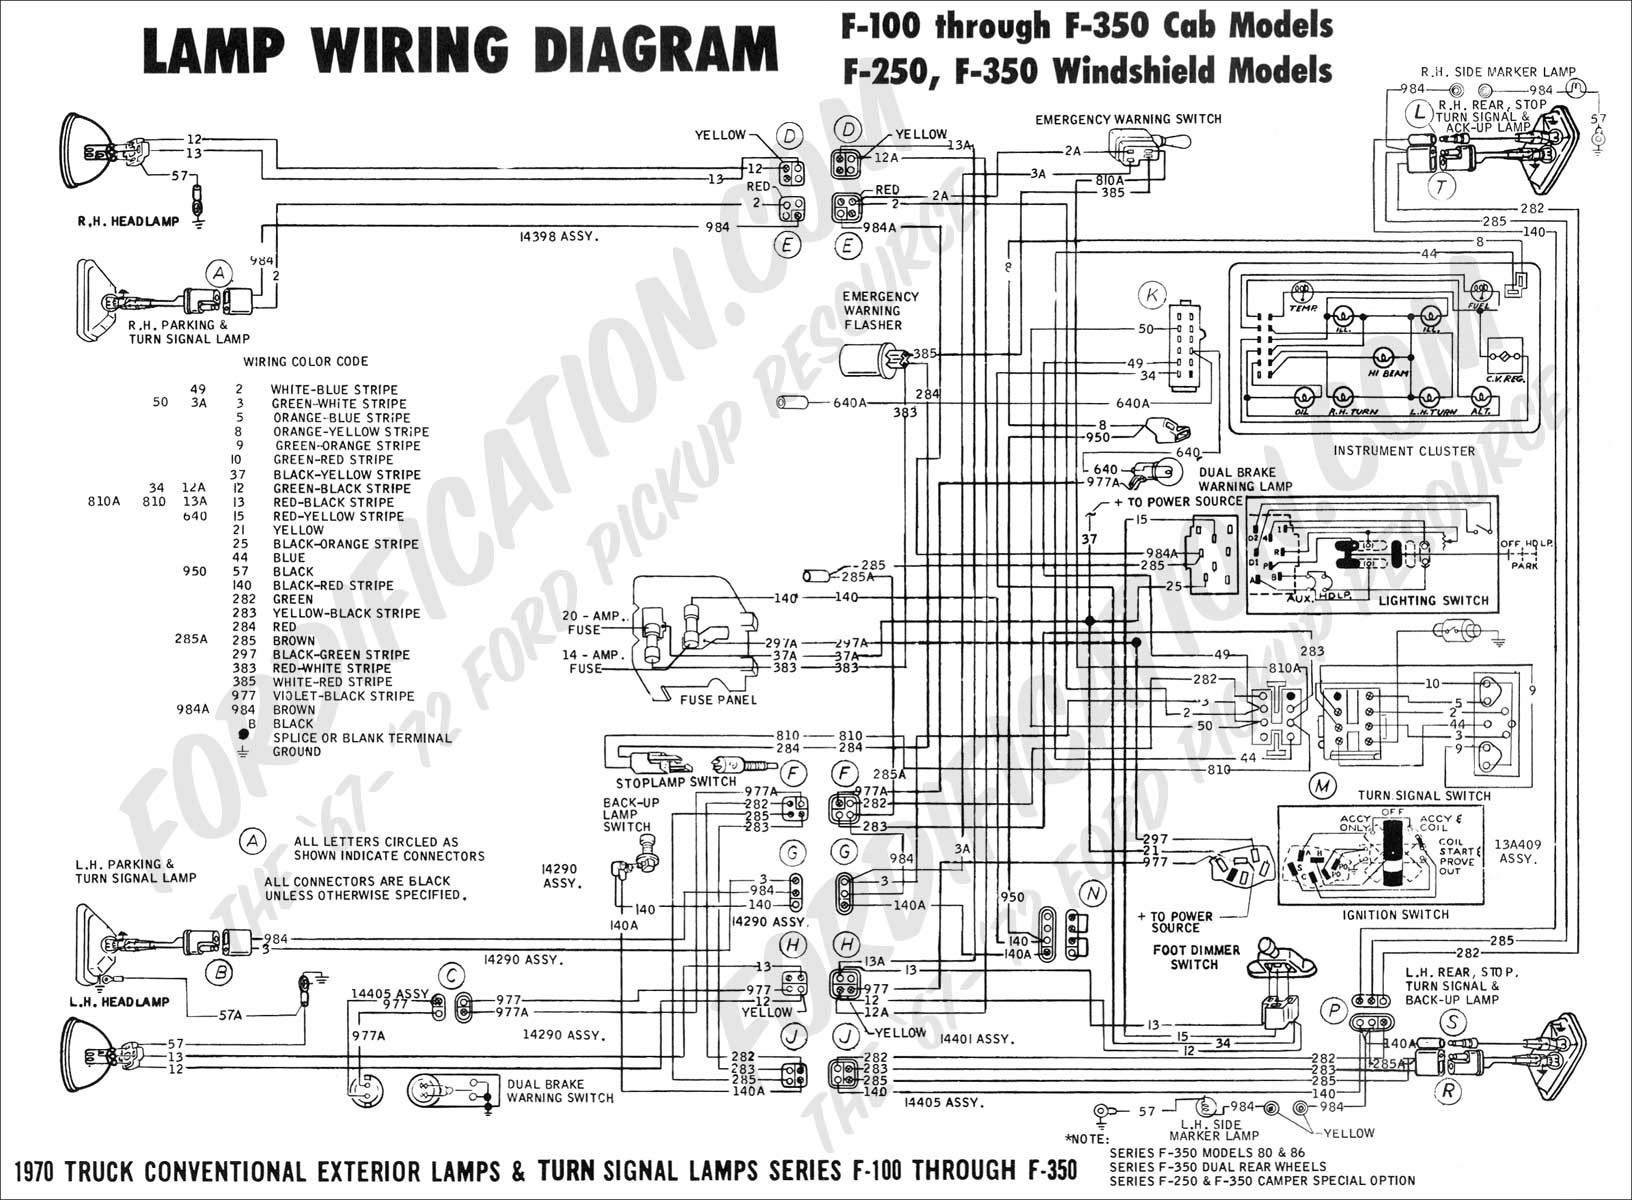 2006 F550 Wiring Diagram Custom Wiring Diagram \u2022 F550 Fuse Diagram For  2004 2006 Ford F550 Fuse Box Diagram